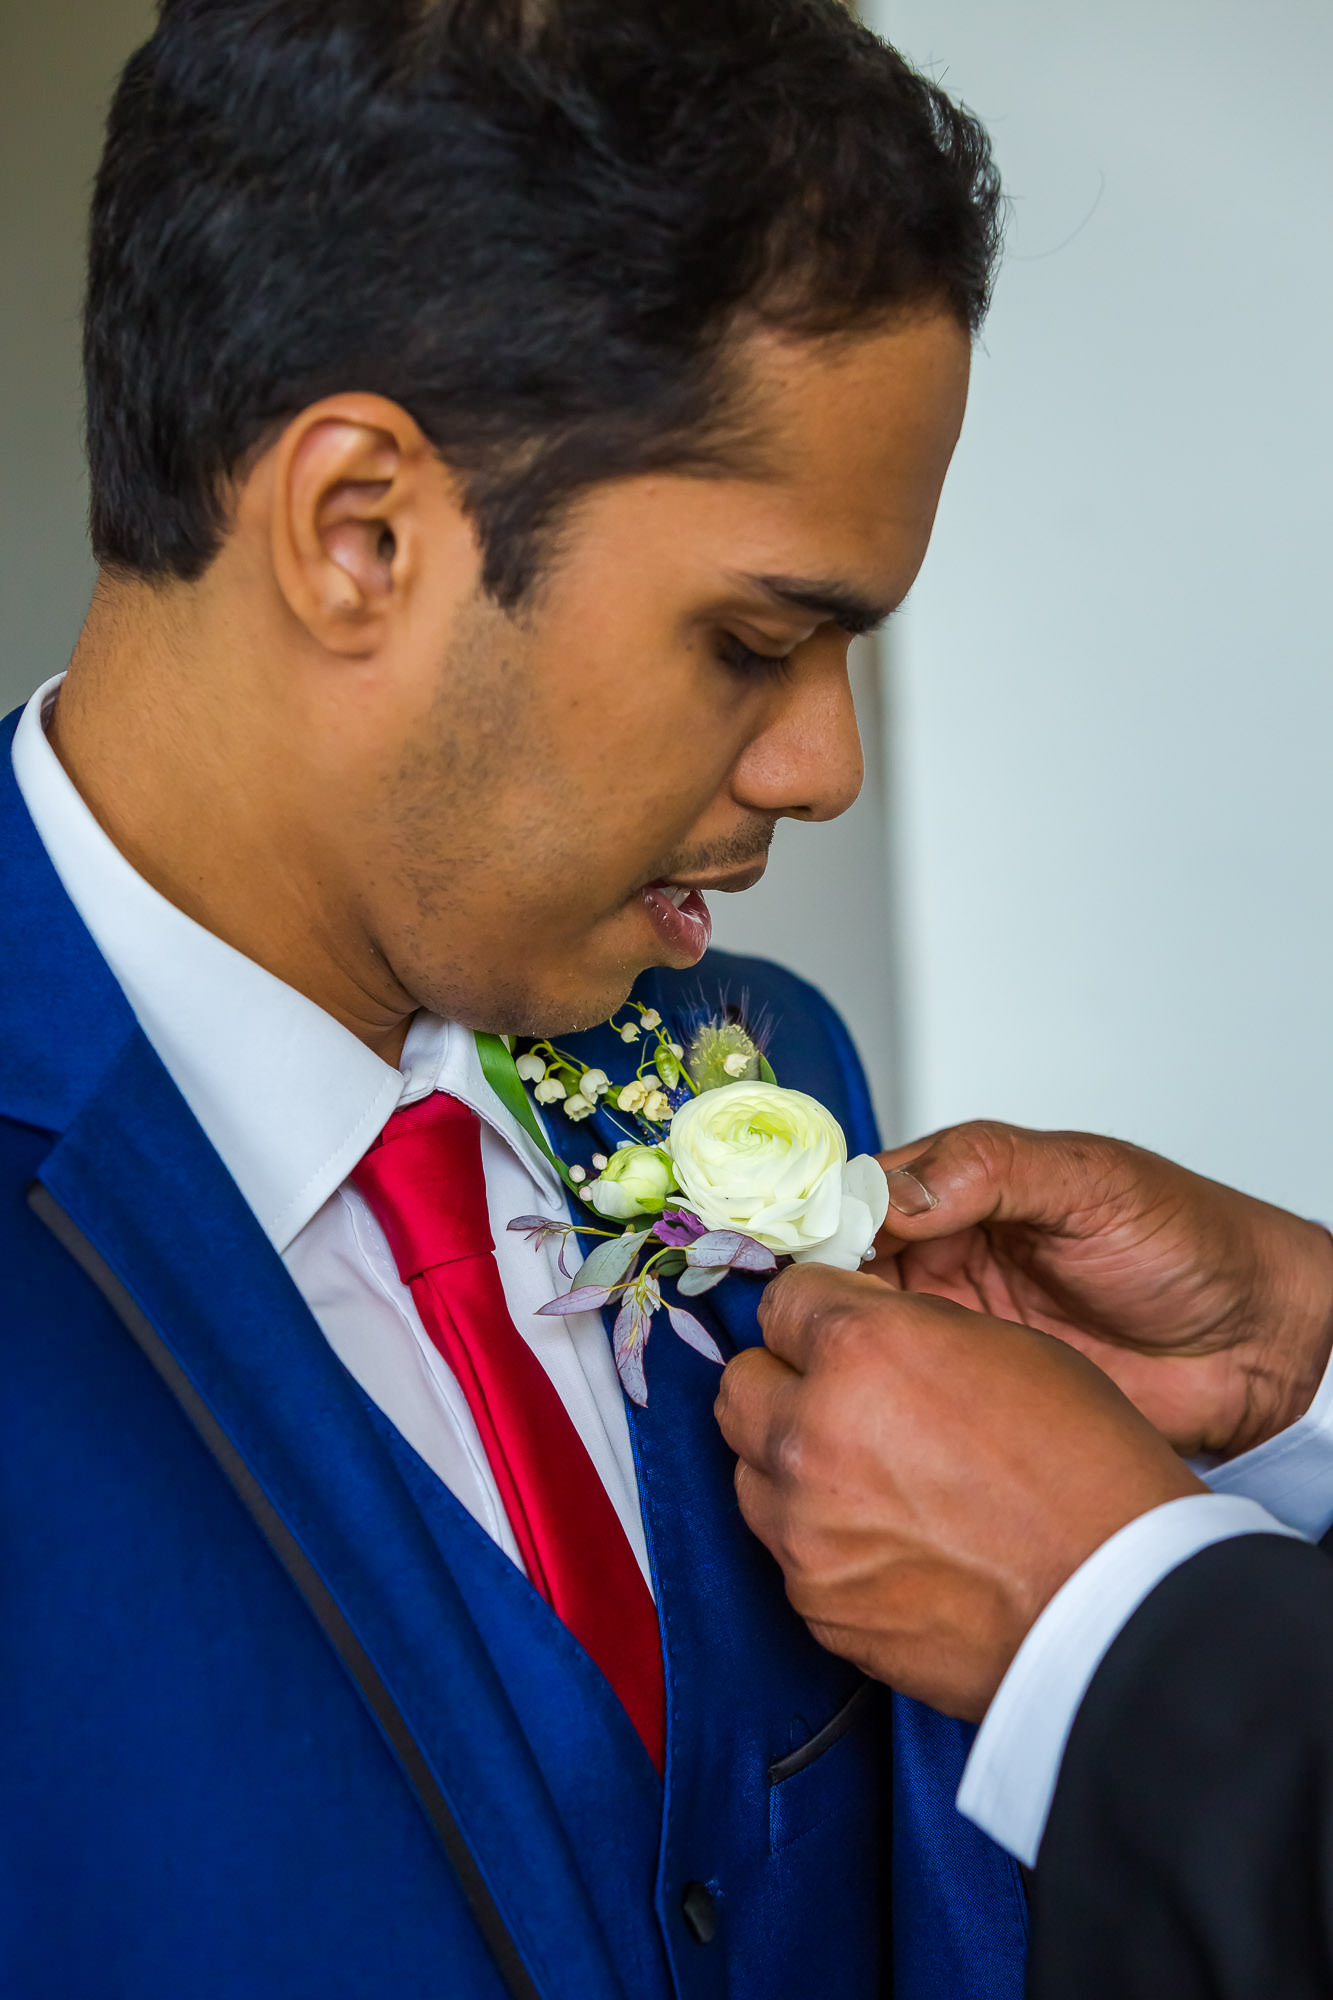 asian-wedding-hindu-tamil-photographer-heythorpe-oxford-0206.jpg